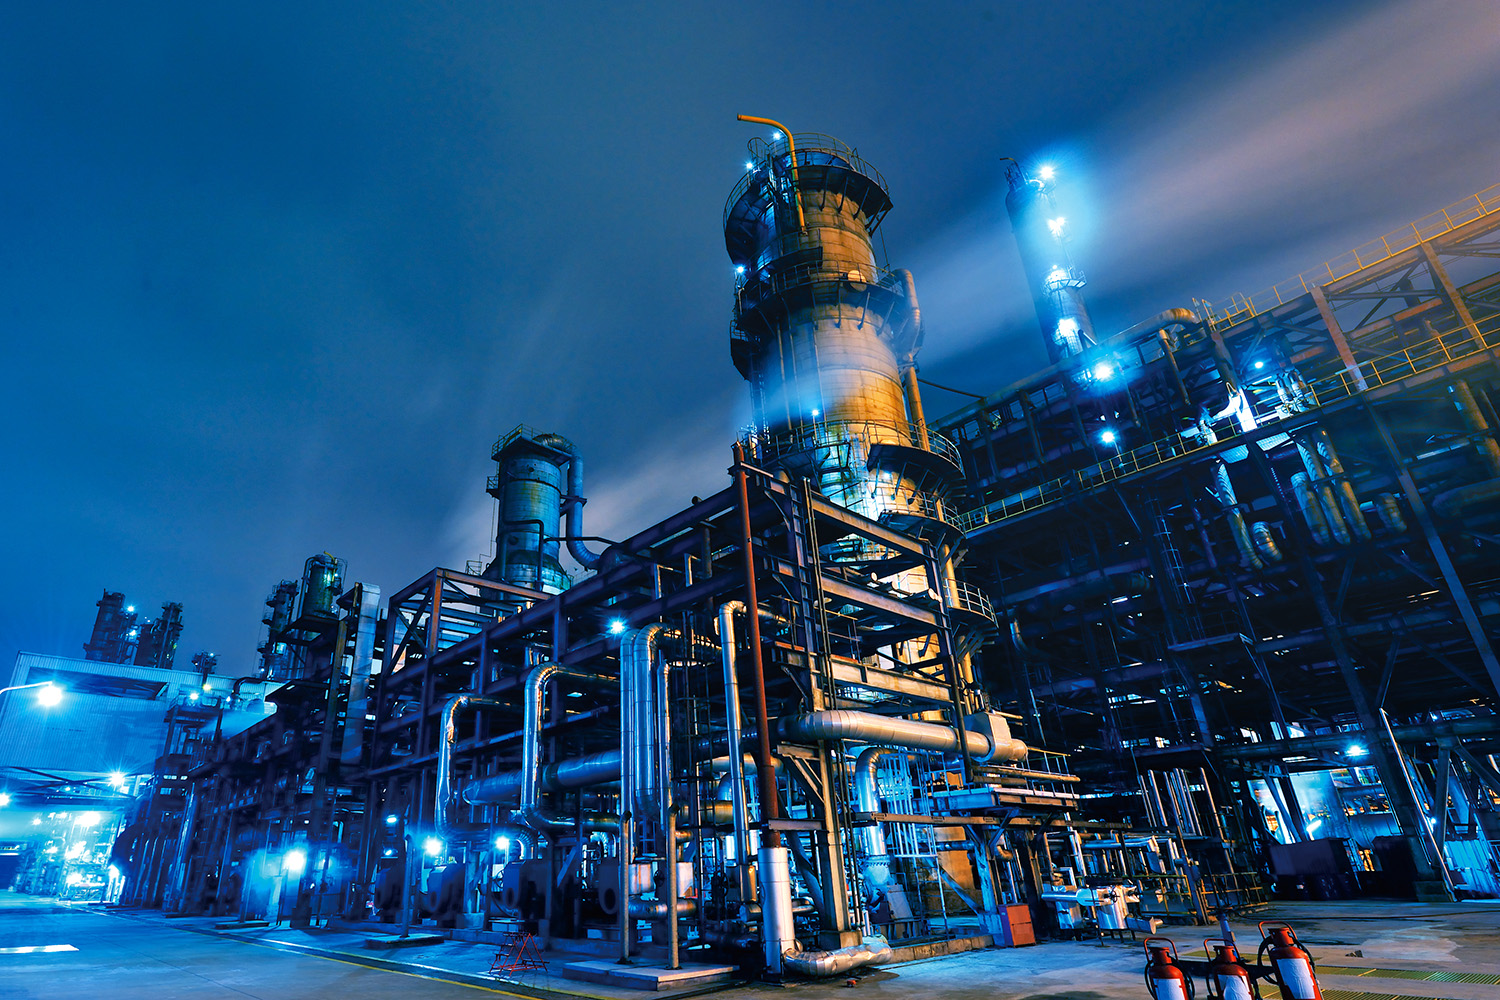 Oil Refinery, Chemical & Petrochemical plant abstract at night.